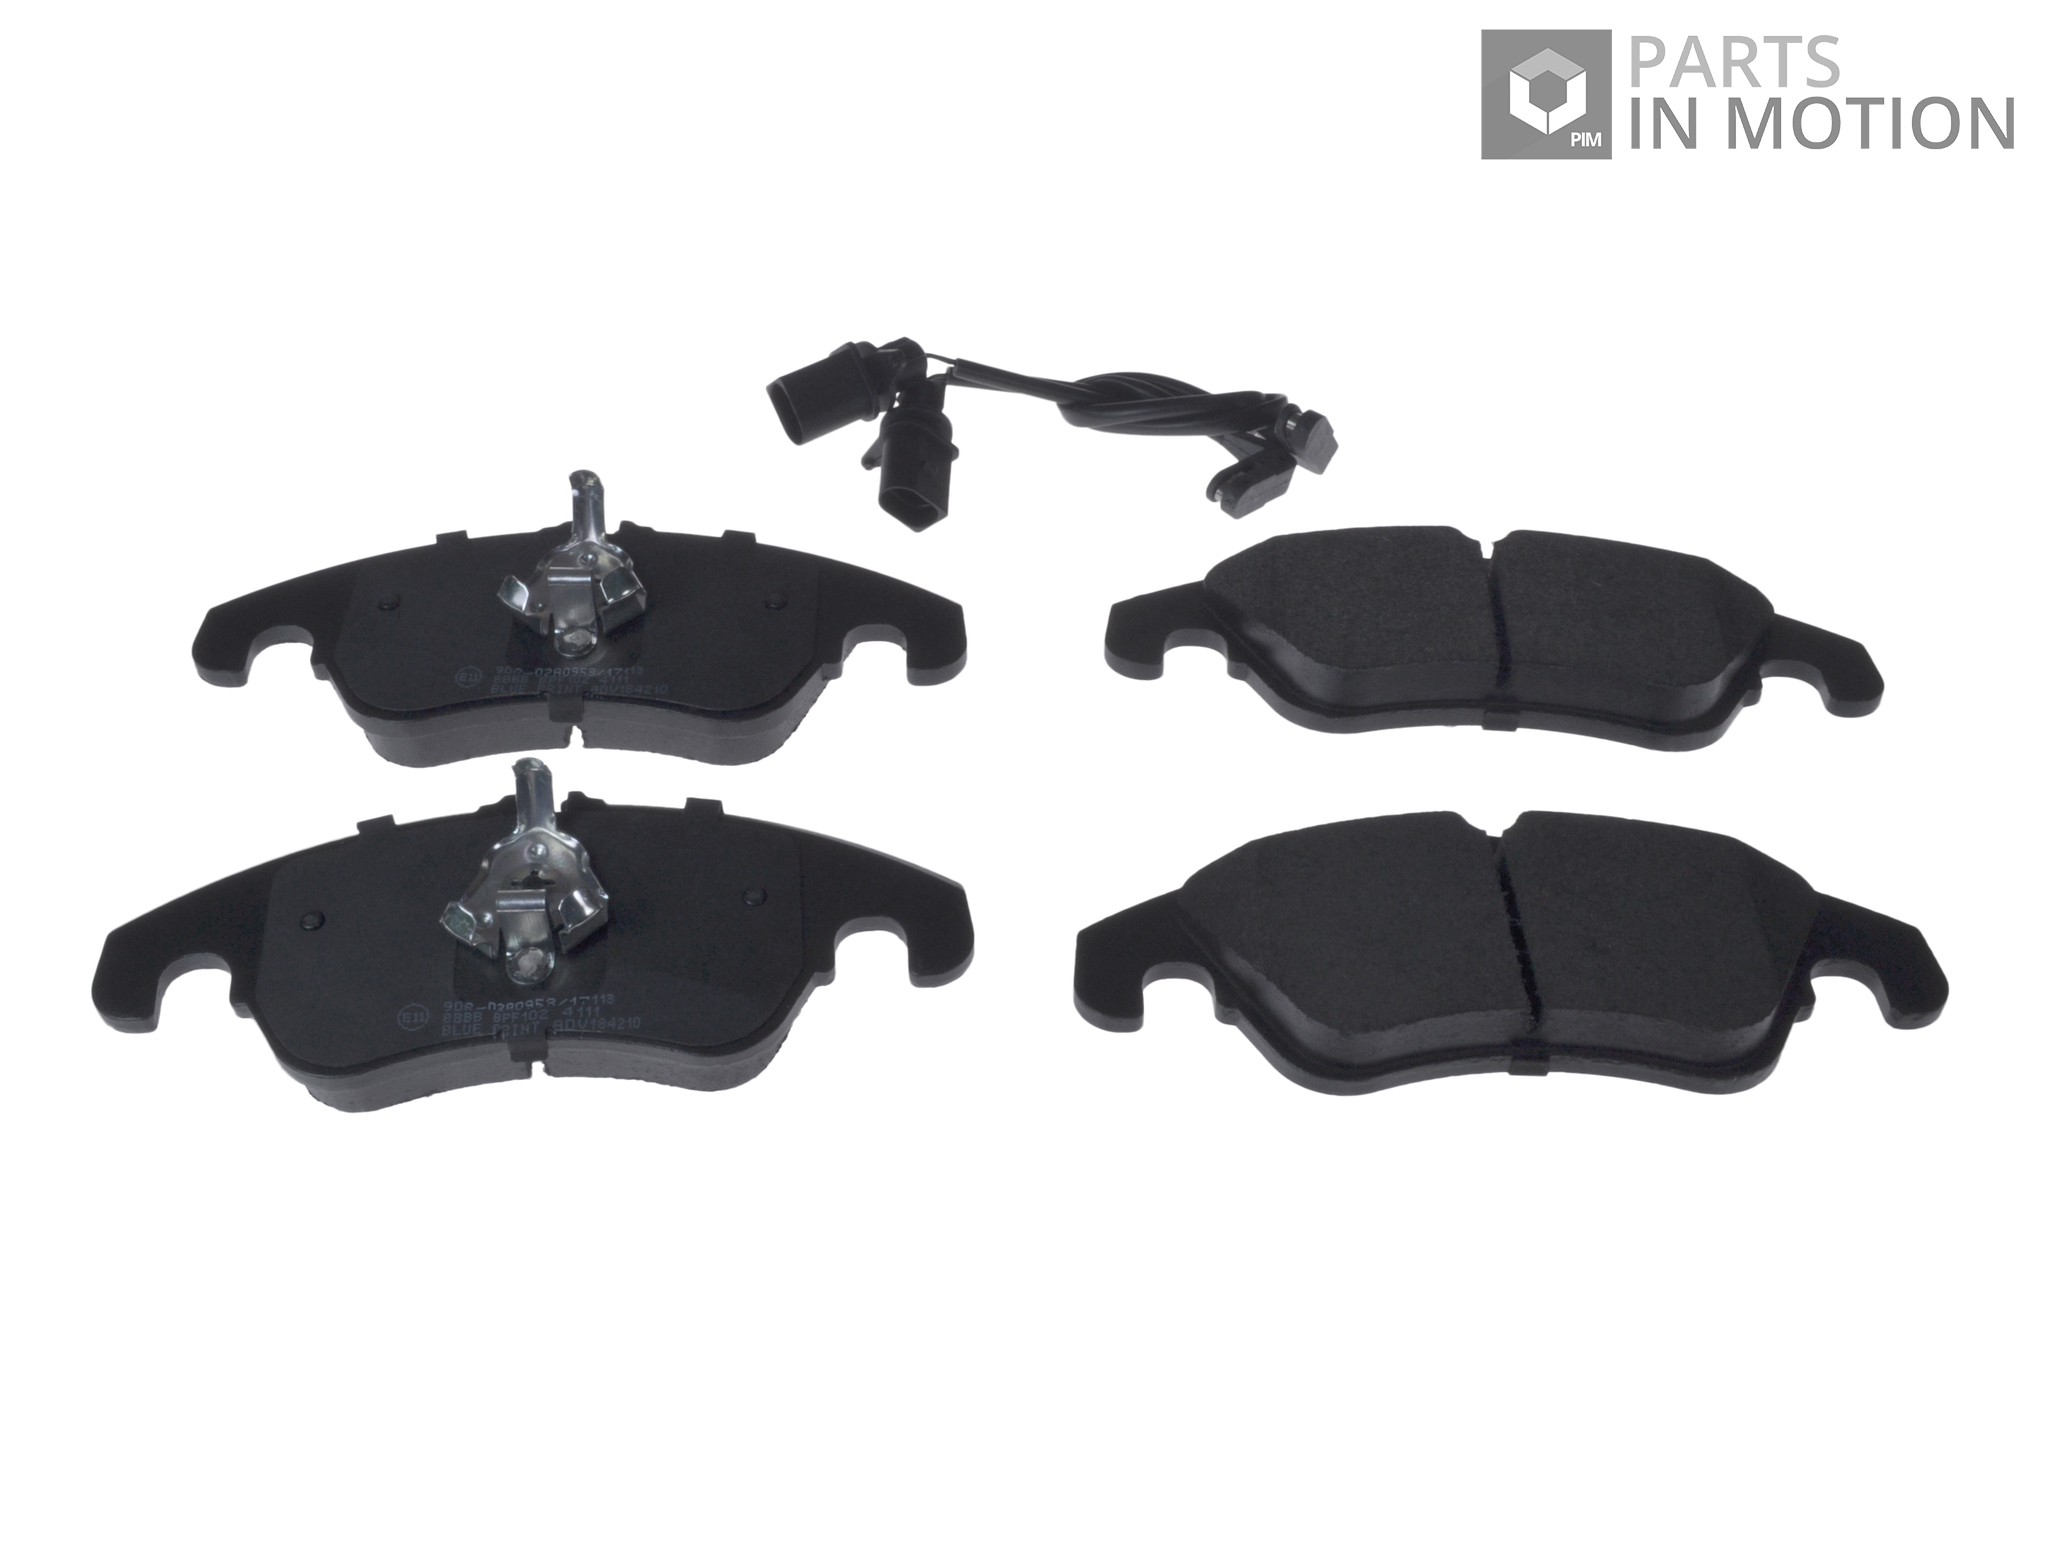 Brake Pads Front for AUDI A6 1.8 2.0 2.8 3.0 TDI C7 4G Delphi